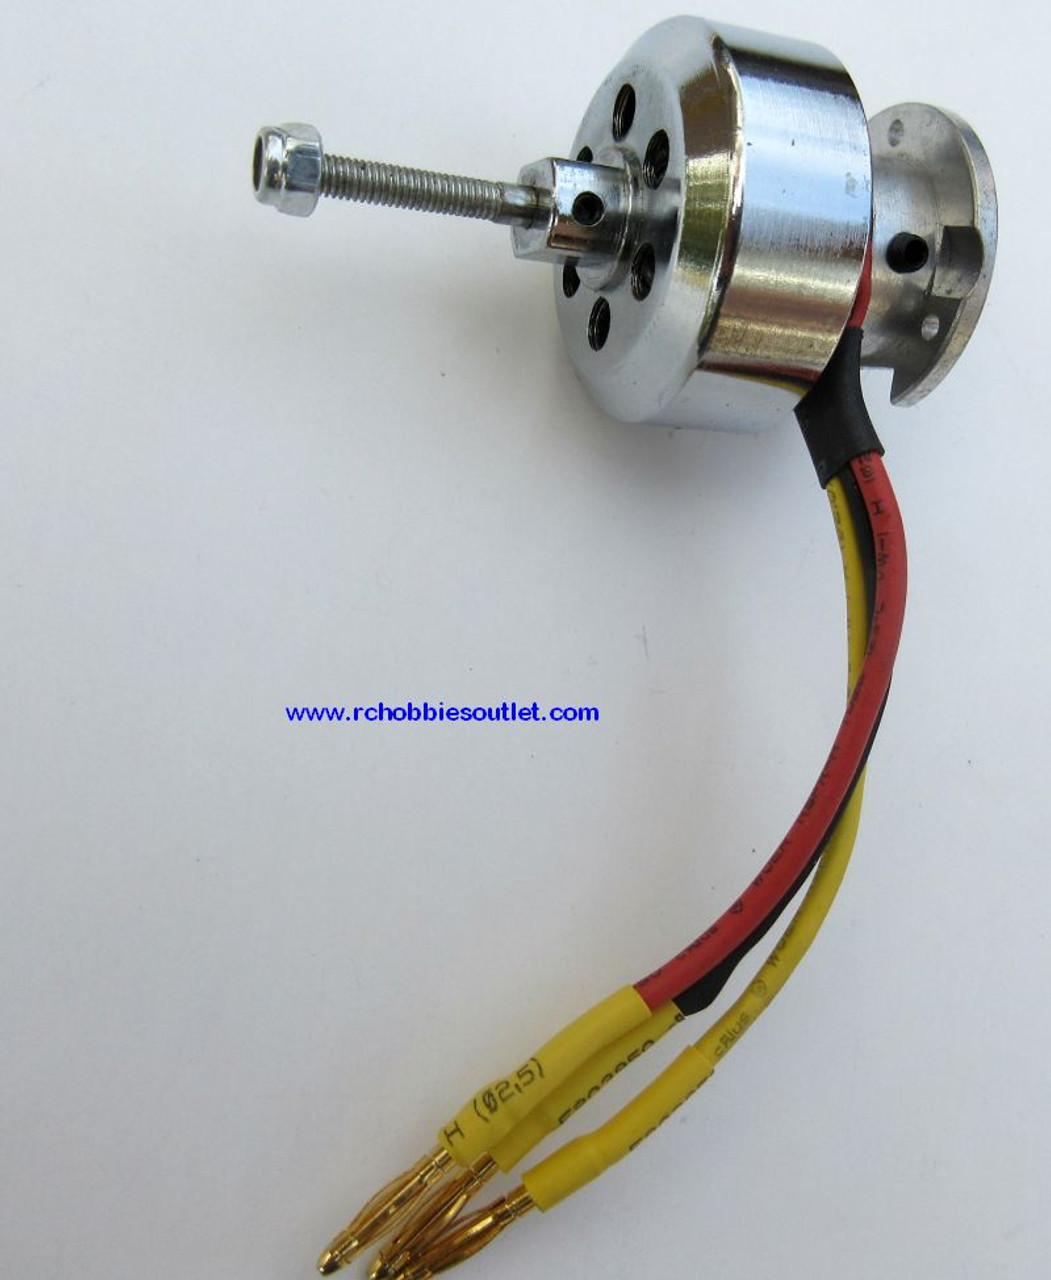 FMS Motor 2408KV 1300 Brushless Motor for Airplane